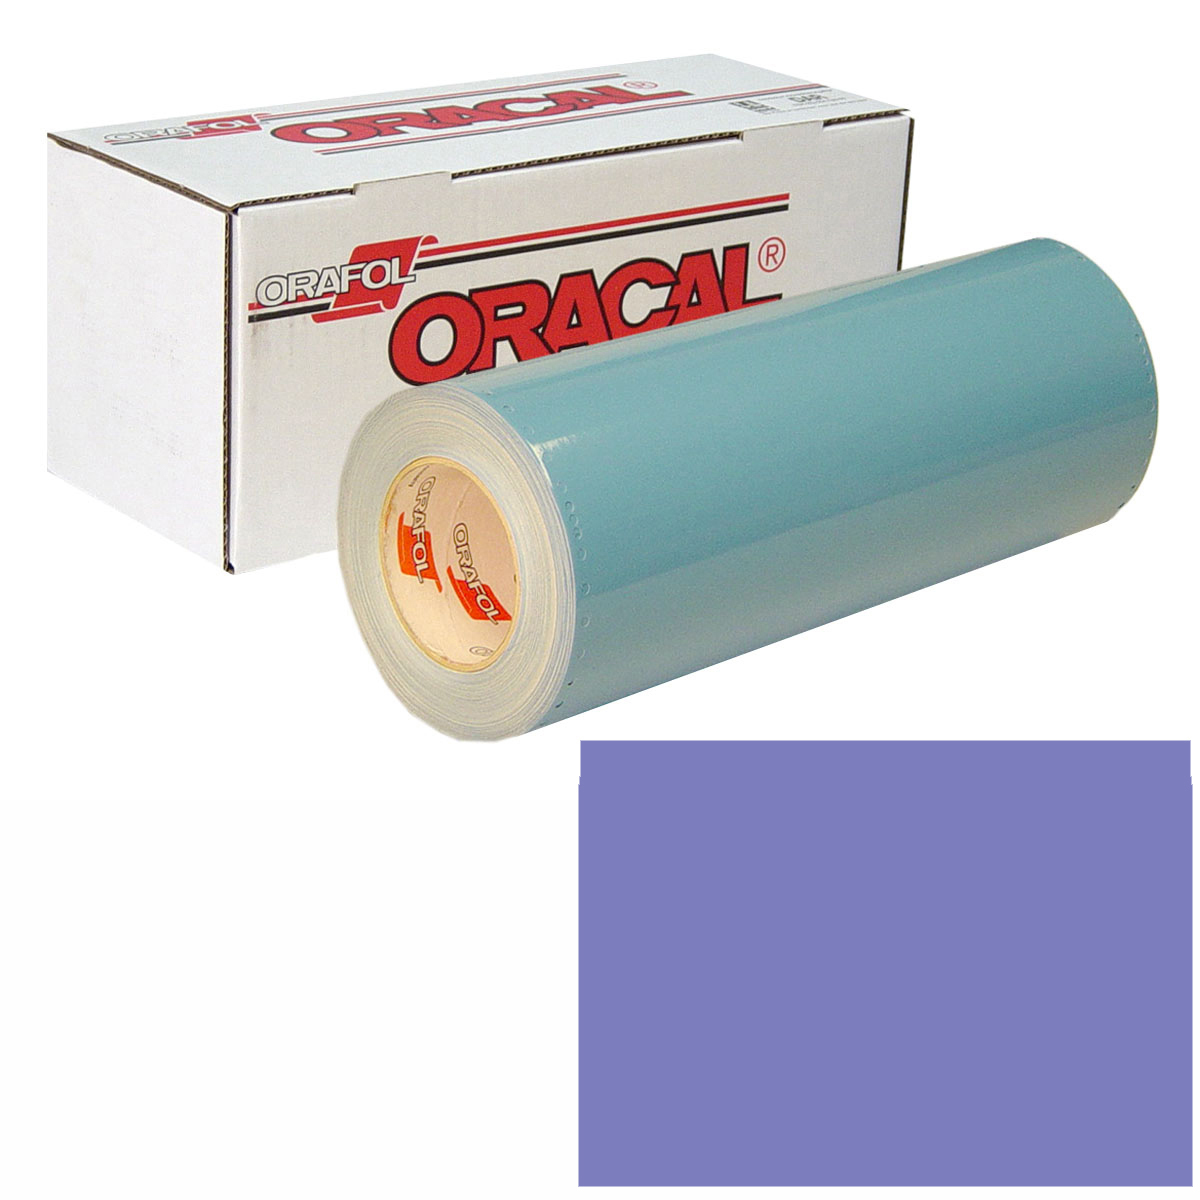 ORACAL 751 30In X 50Yd 043 Lavender